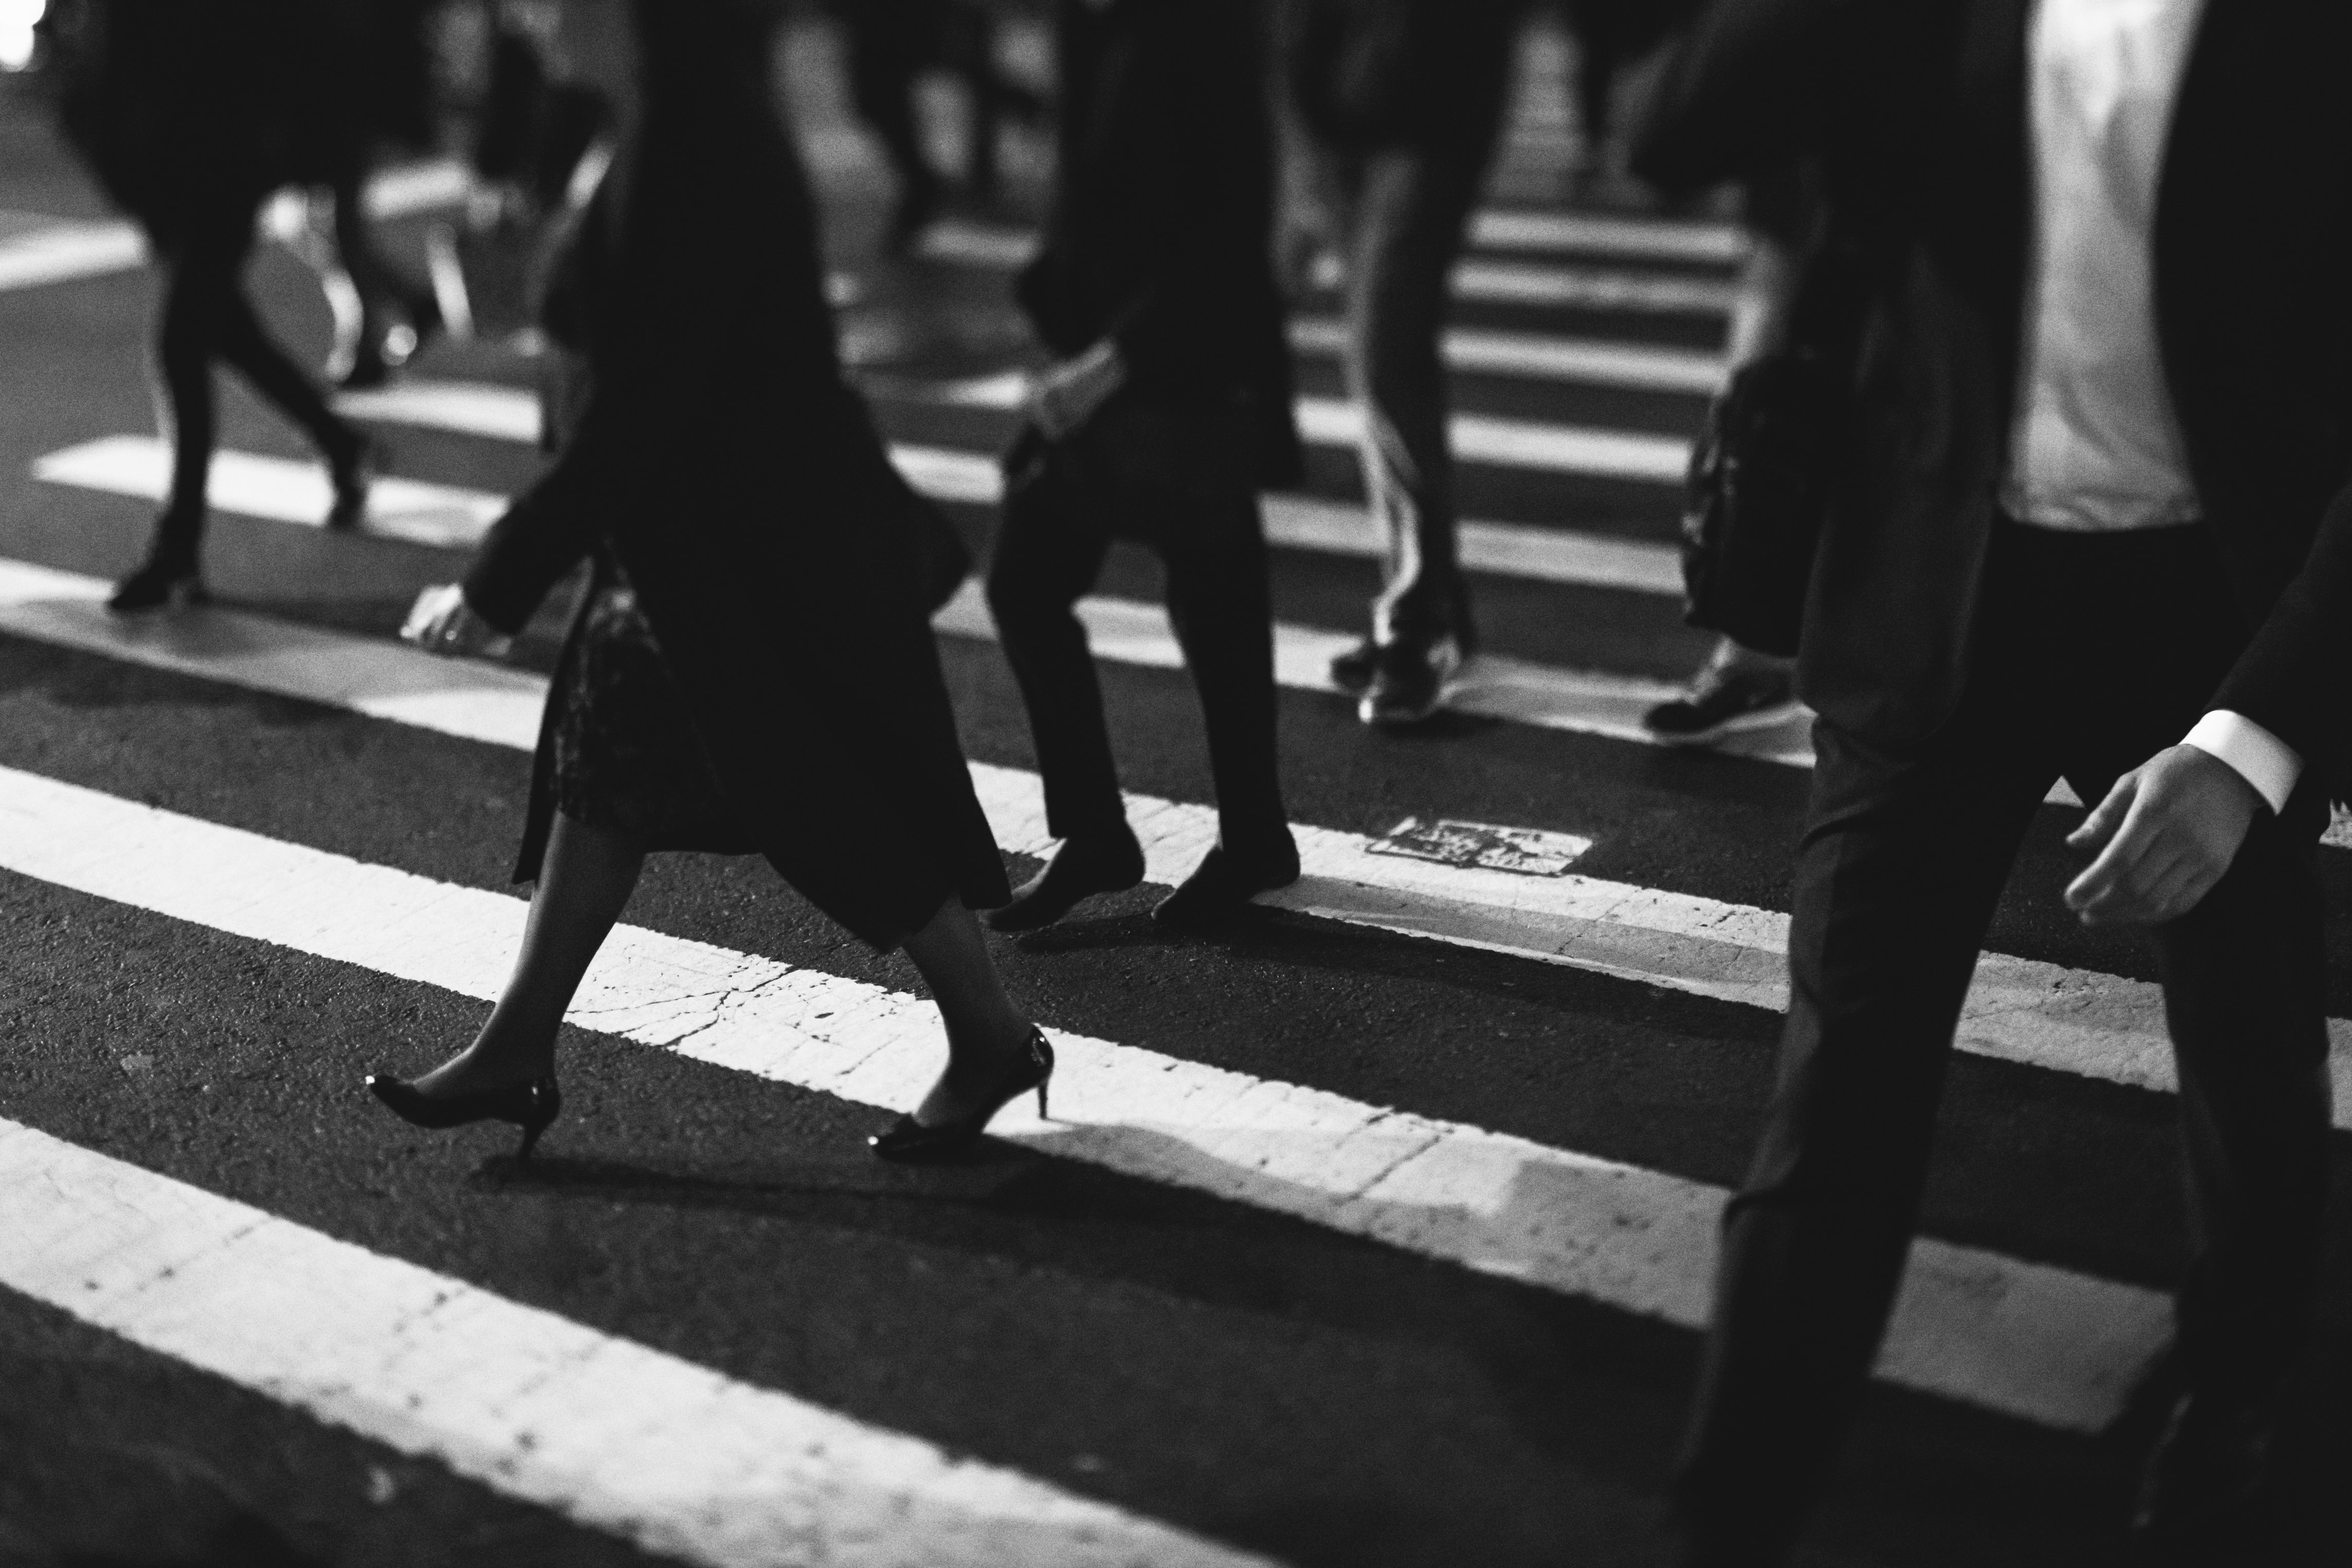 grayscale photo of group of people passing on pedestrian lane